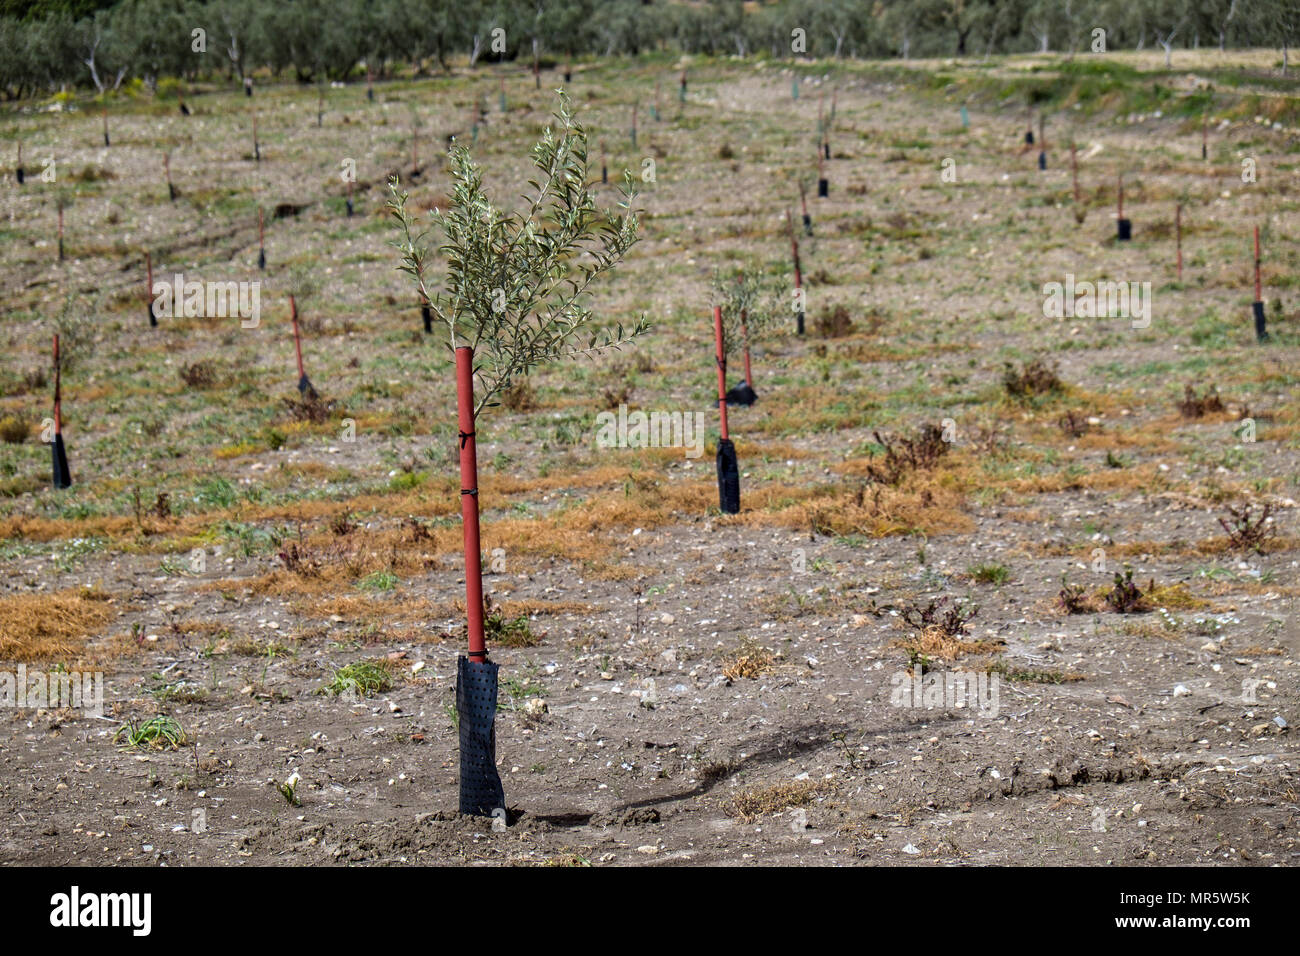 Planting new olive groves is now a strategic policy decision in Andalusia, Spain. Olive trees will produce fruit in between three and twelve years. - Stock Image